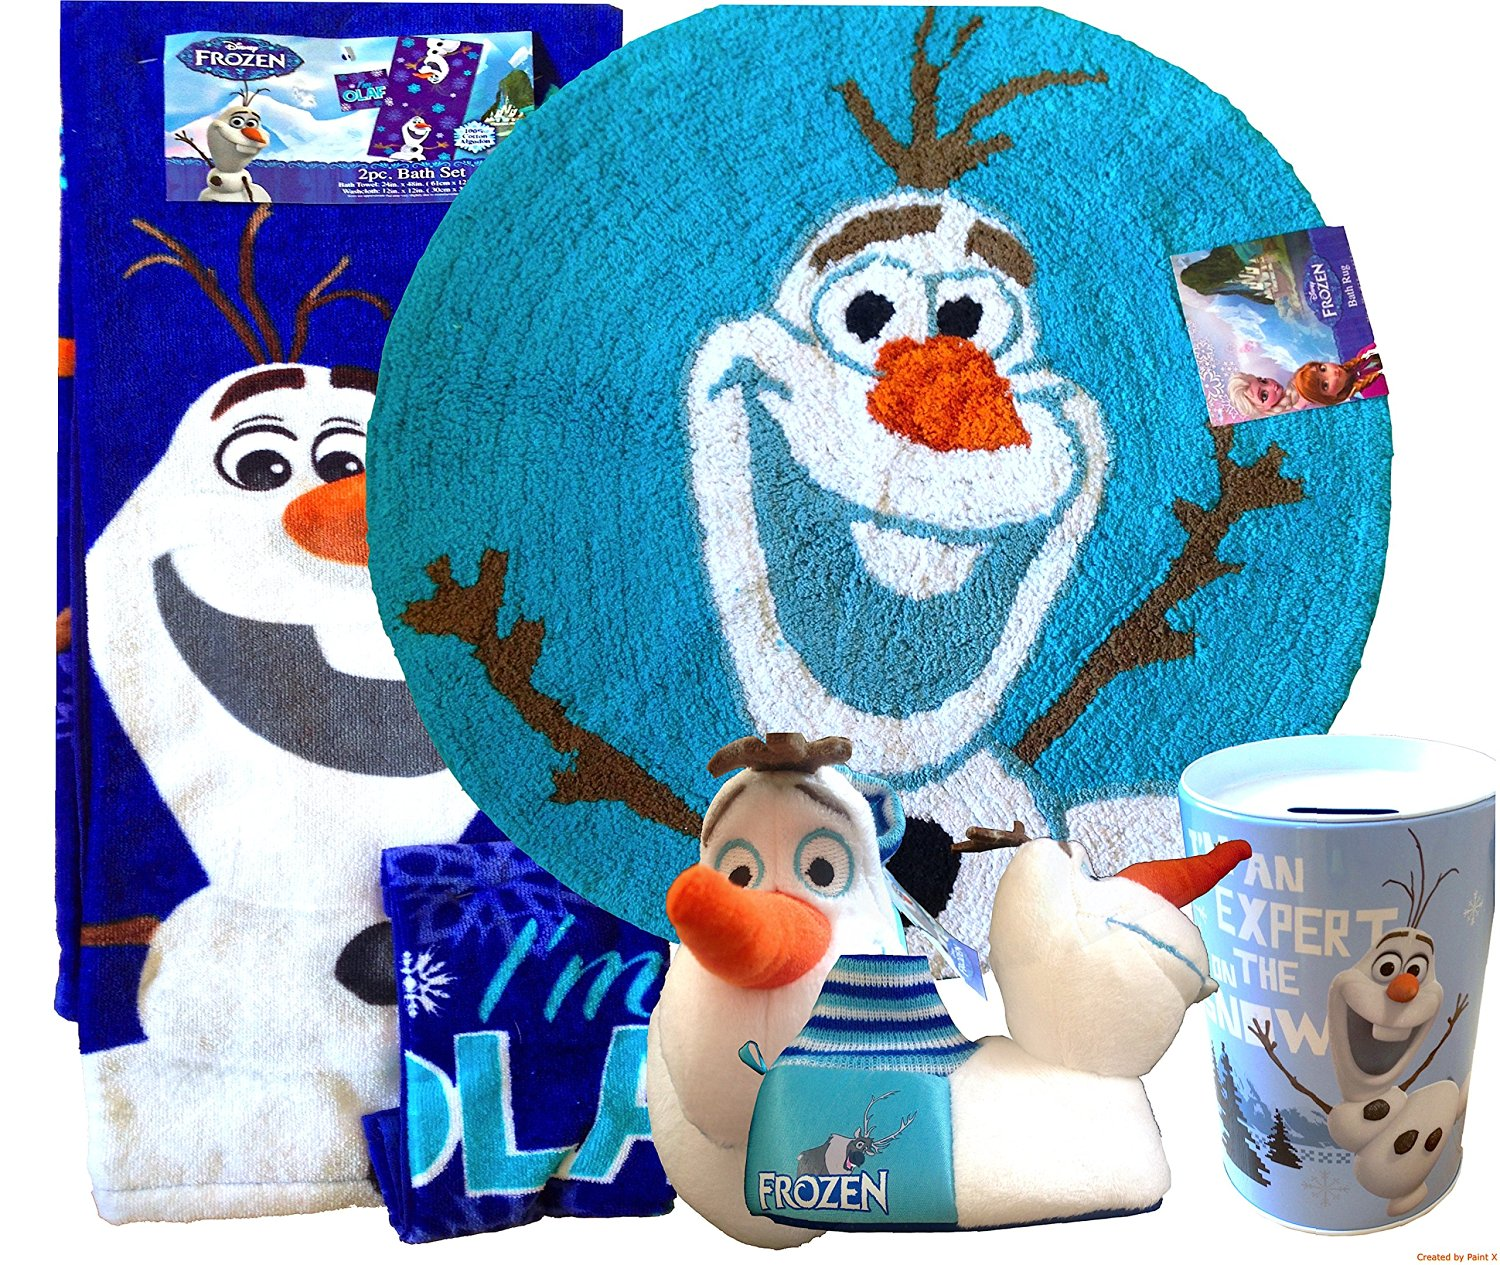 Disney Frozen Olaf Bathroom Decoration| Disney Frozen 2pc Bath Set Includes; Bath Towel with Small Washcloth Disney Frozen Olaf Circular Bath Rug with Cute Olaf Toddler Slippers and Olaf Coin Tin Box Your Perfect Christmas Gift Disney Frozen Olaf (MEDUIM T 7/8)